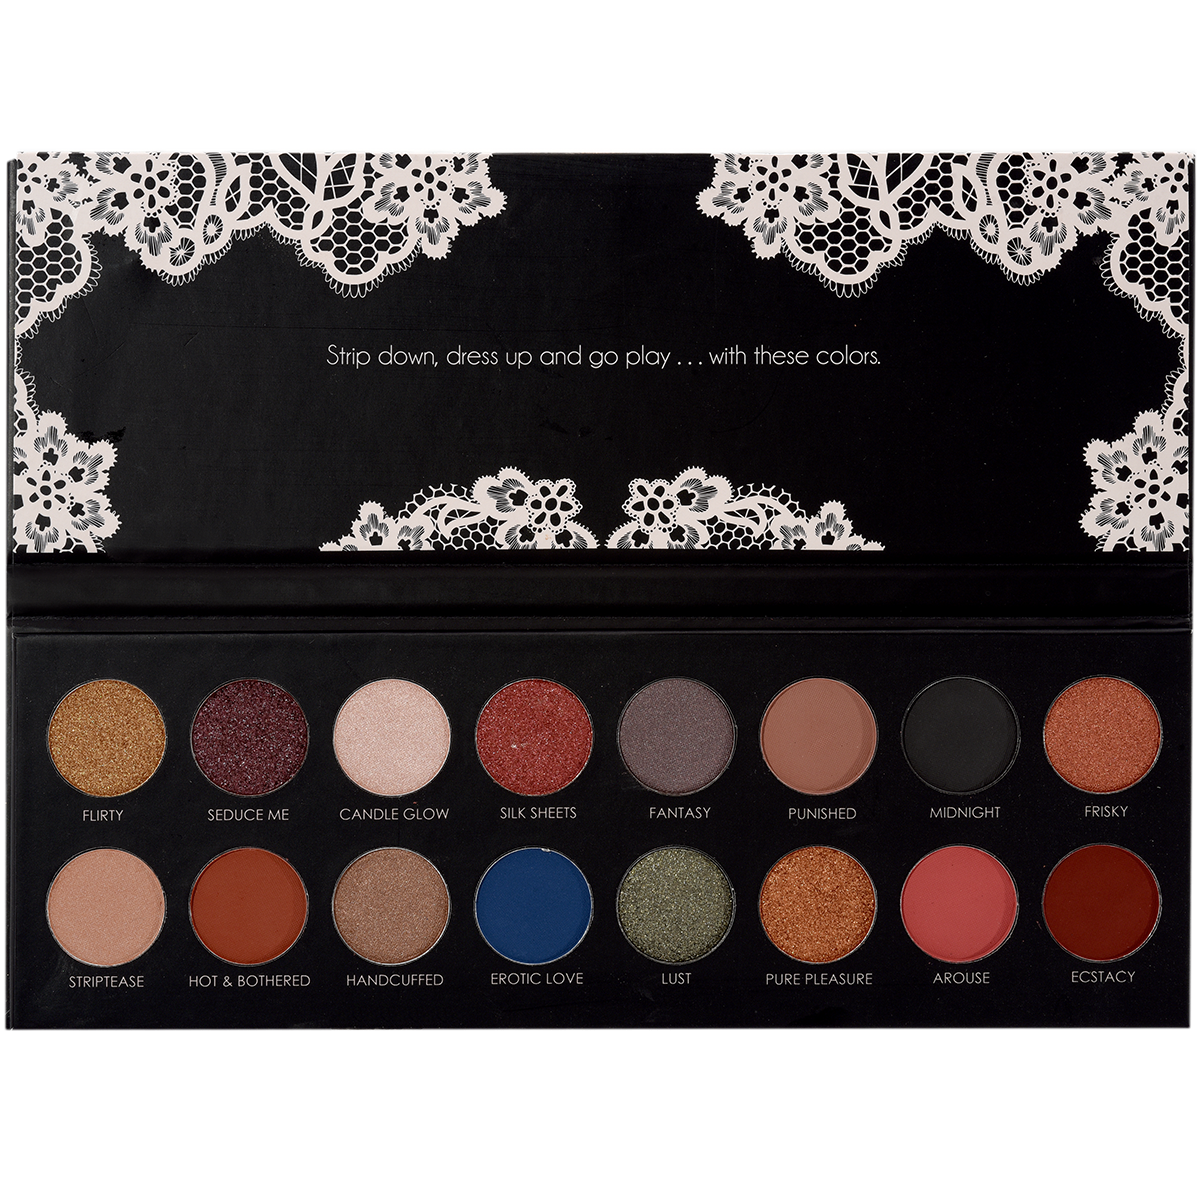 ITA-2016-2 : Sinfull Eyes-Role Play 16 Colors Palette 6 PC